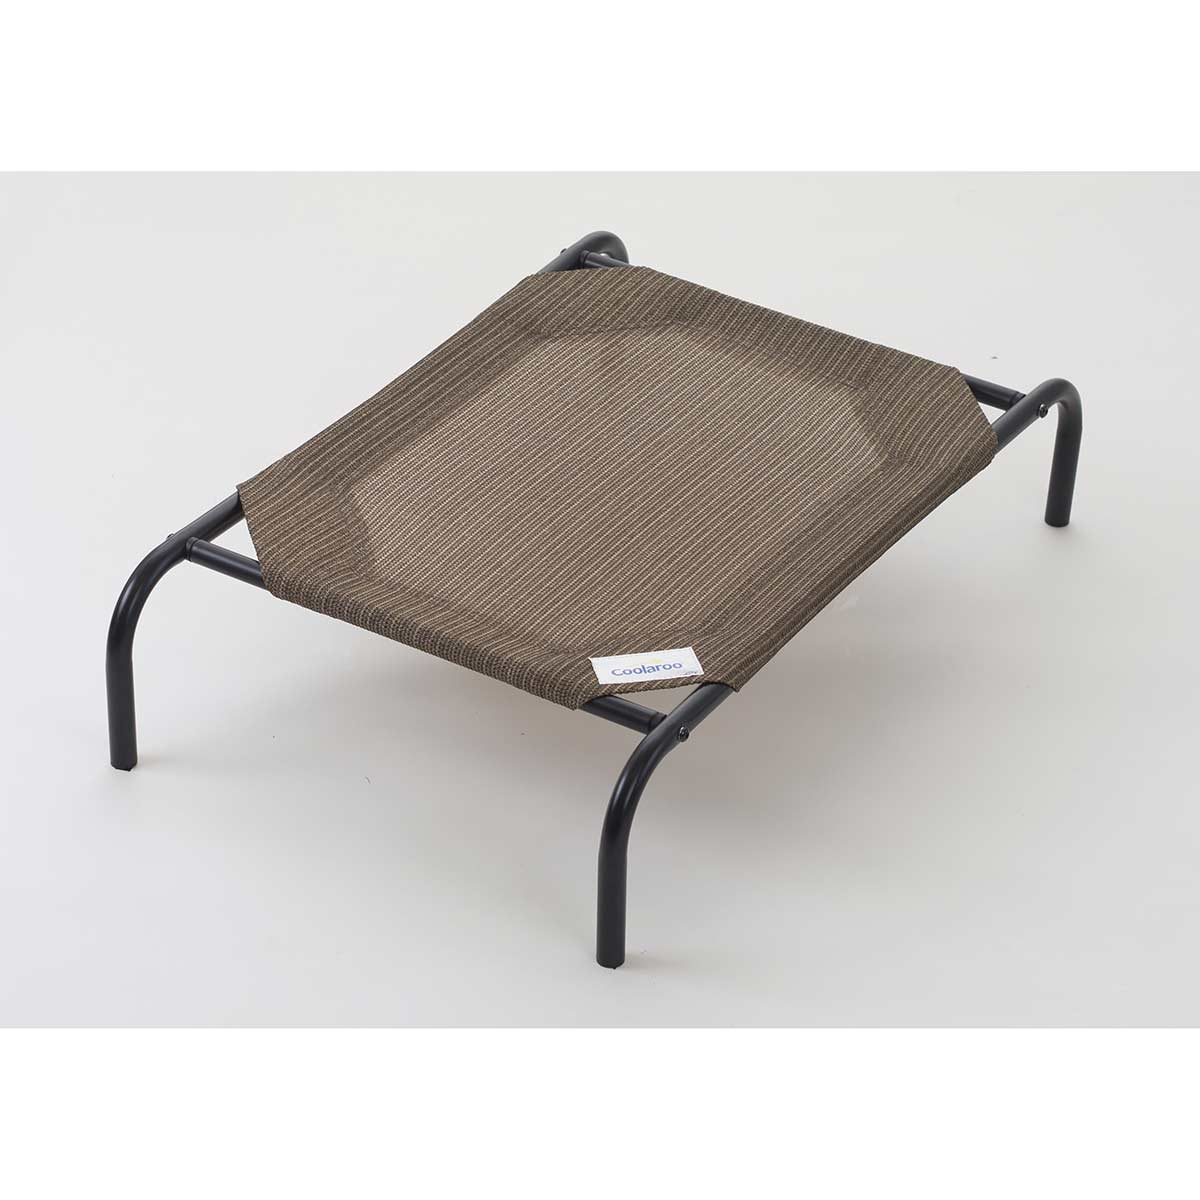 Coolaroo Large Nutmeg Pet Bed 51.12 inches by 31.5 inches